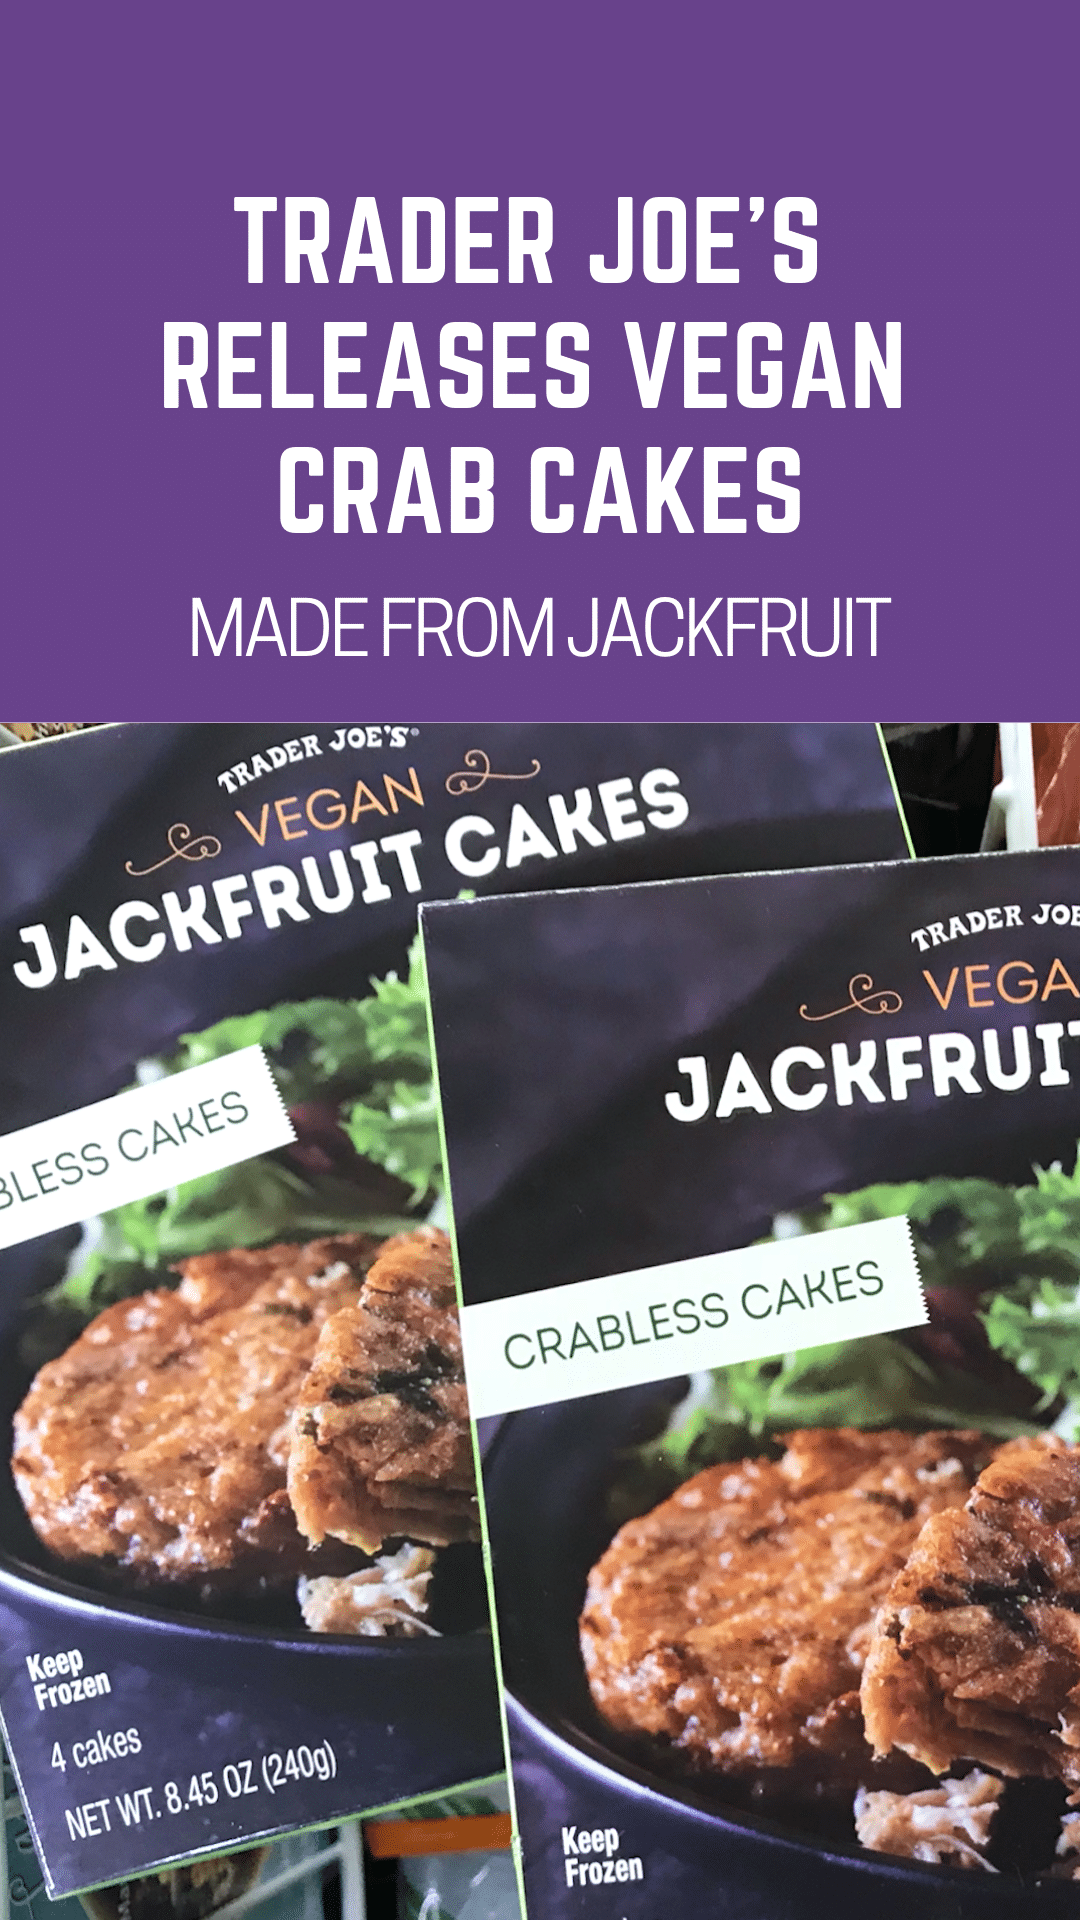 Trader Joe's Releases Vegan Crab Cakes Made From Jackfruit